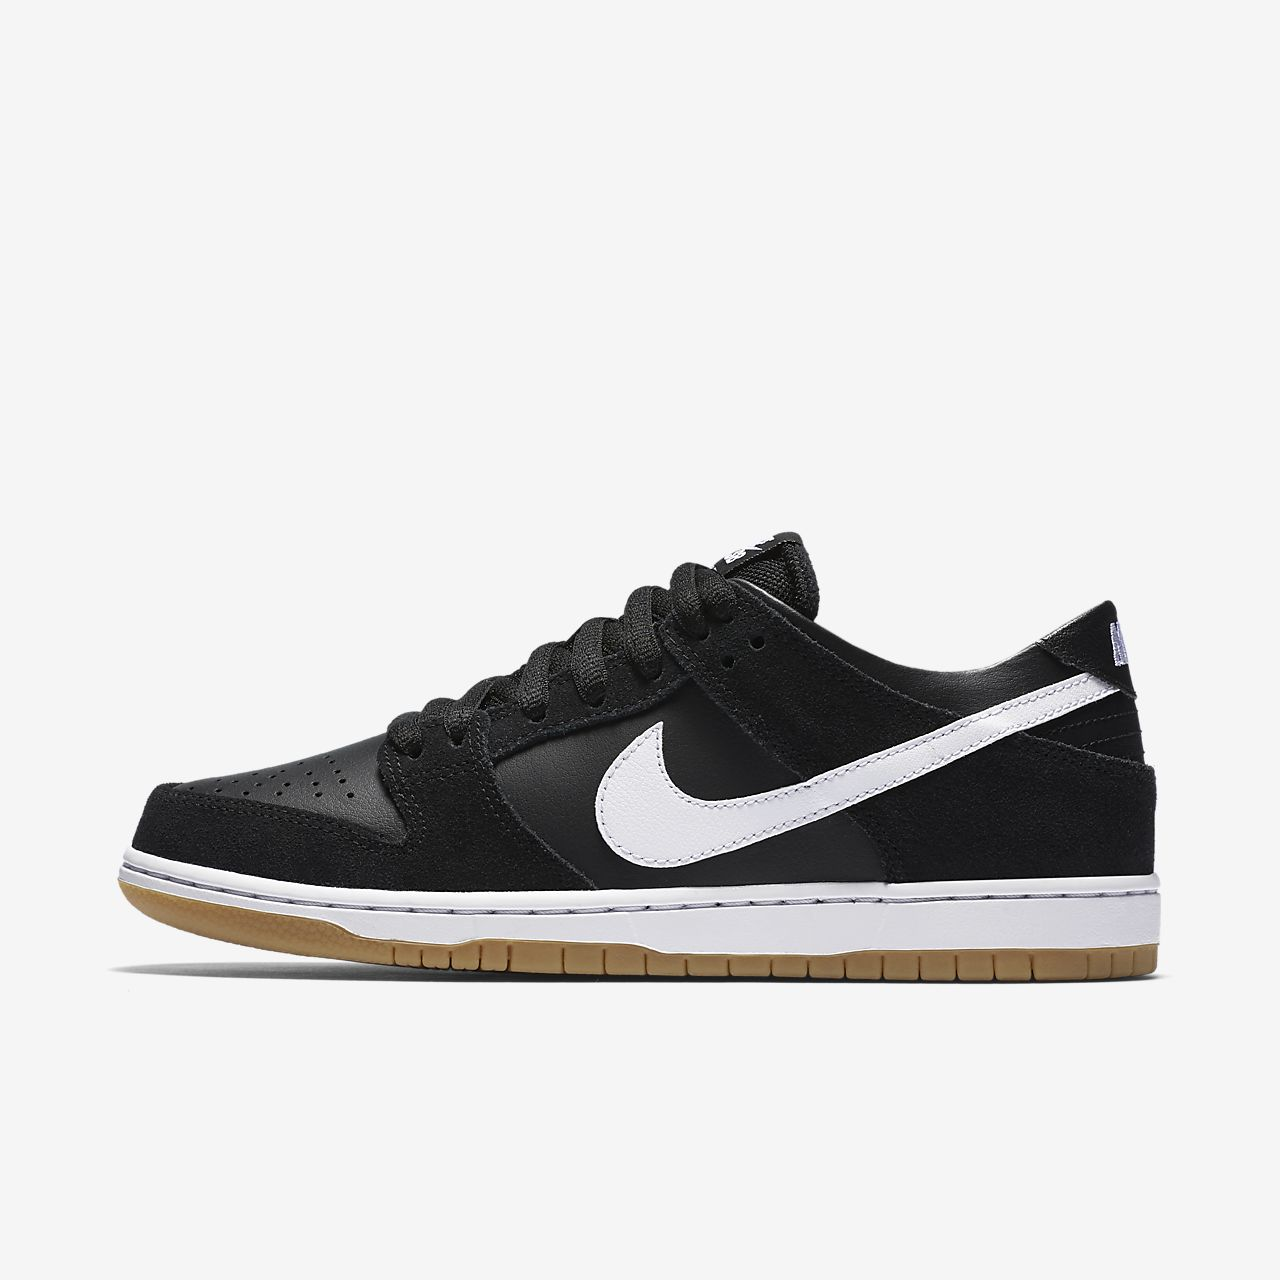 Nike SB Dunk Low Pro Men s Skateboarding Shoe